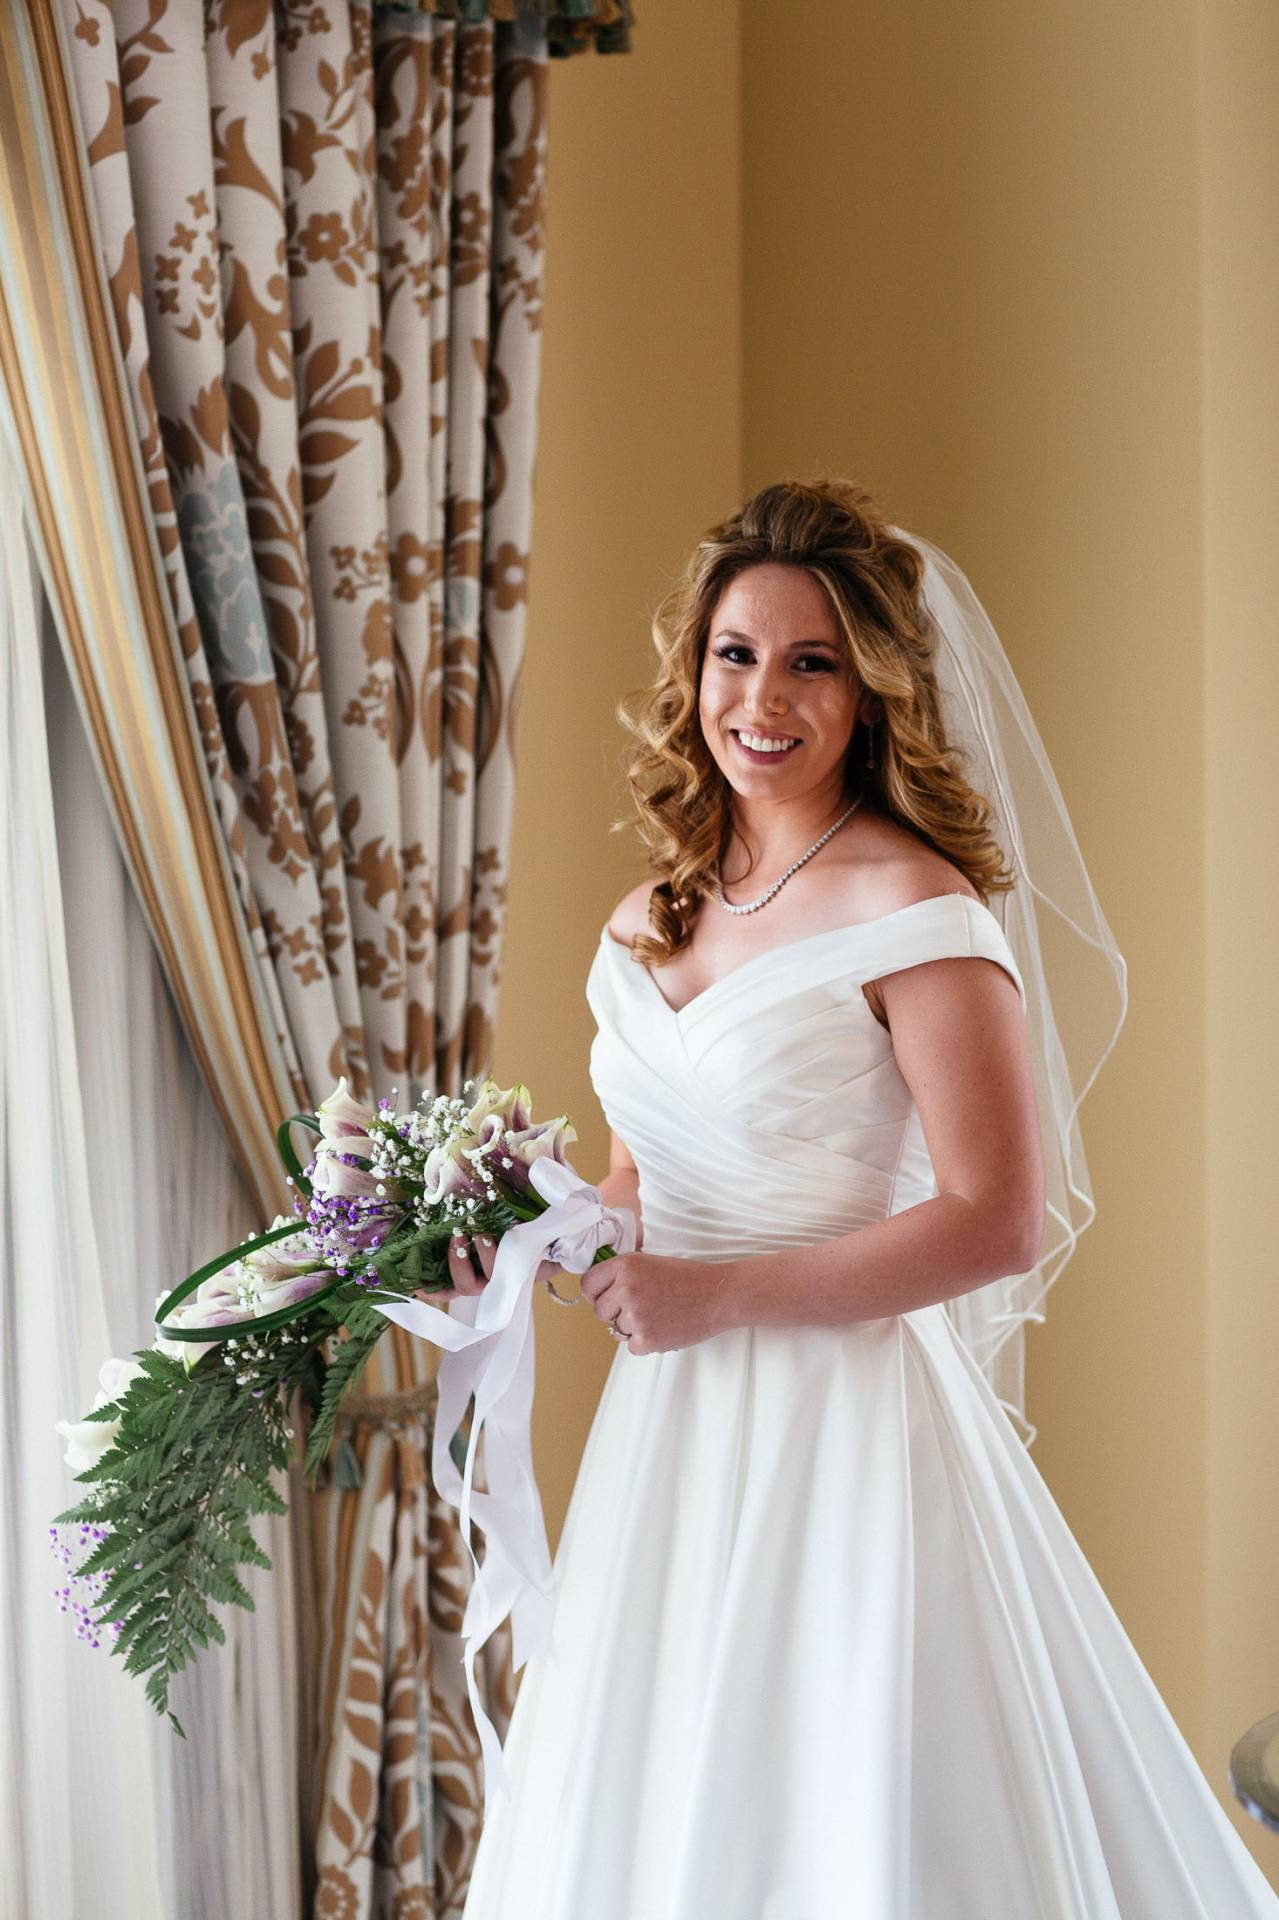 Portrait of bride in wedding dress holding cascading bouquet at The Broadmoor.